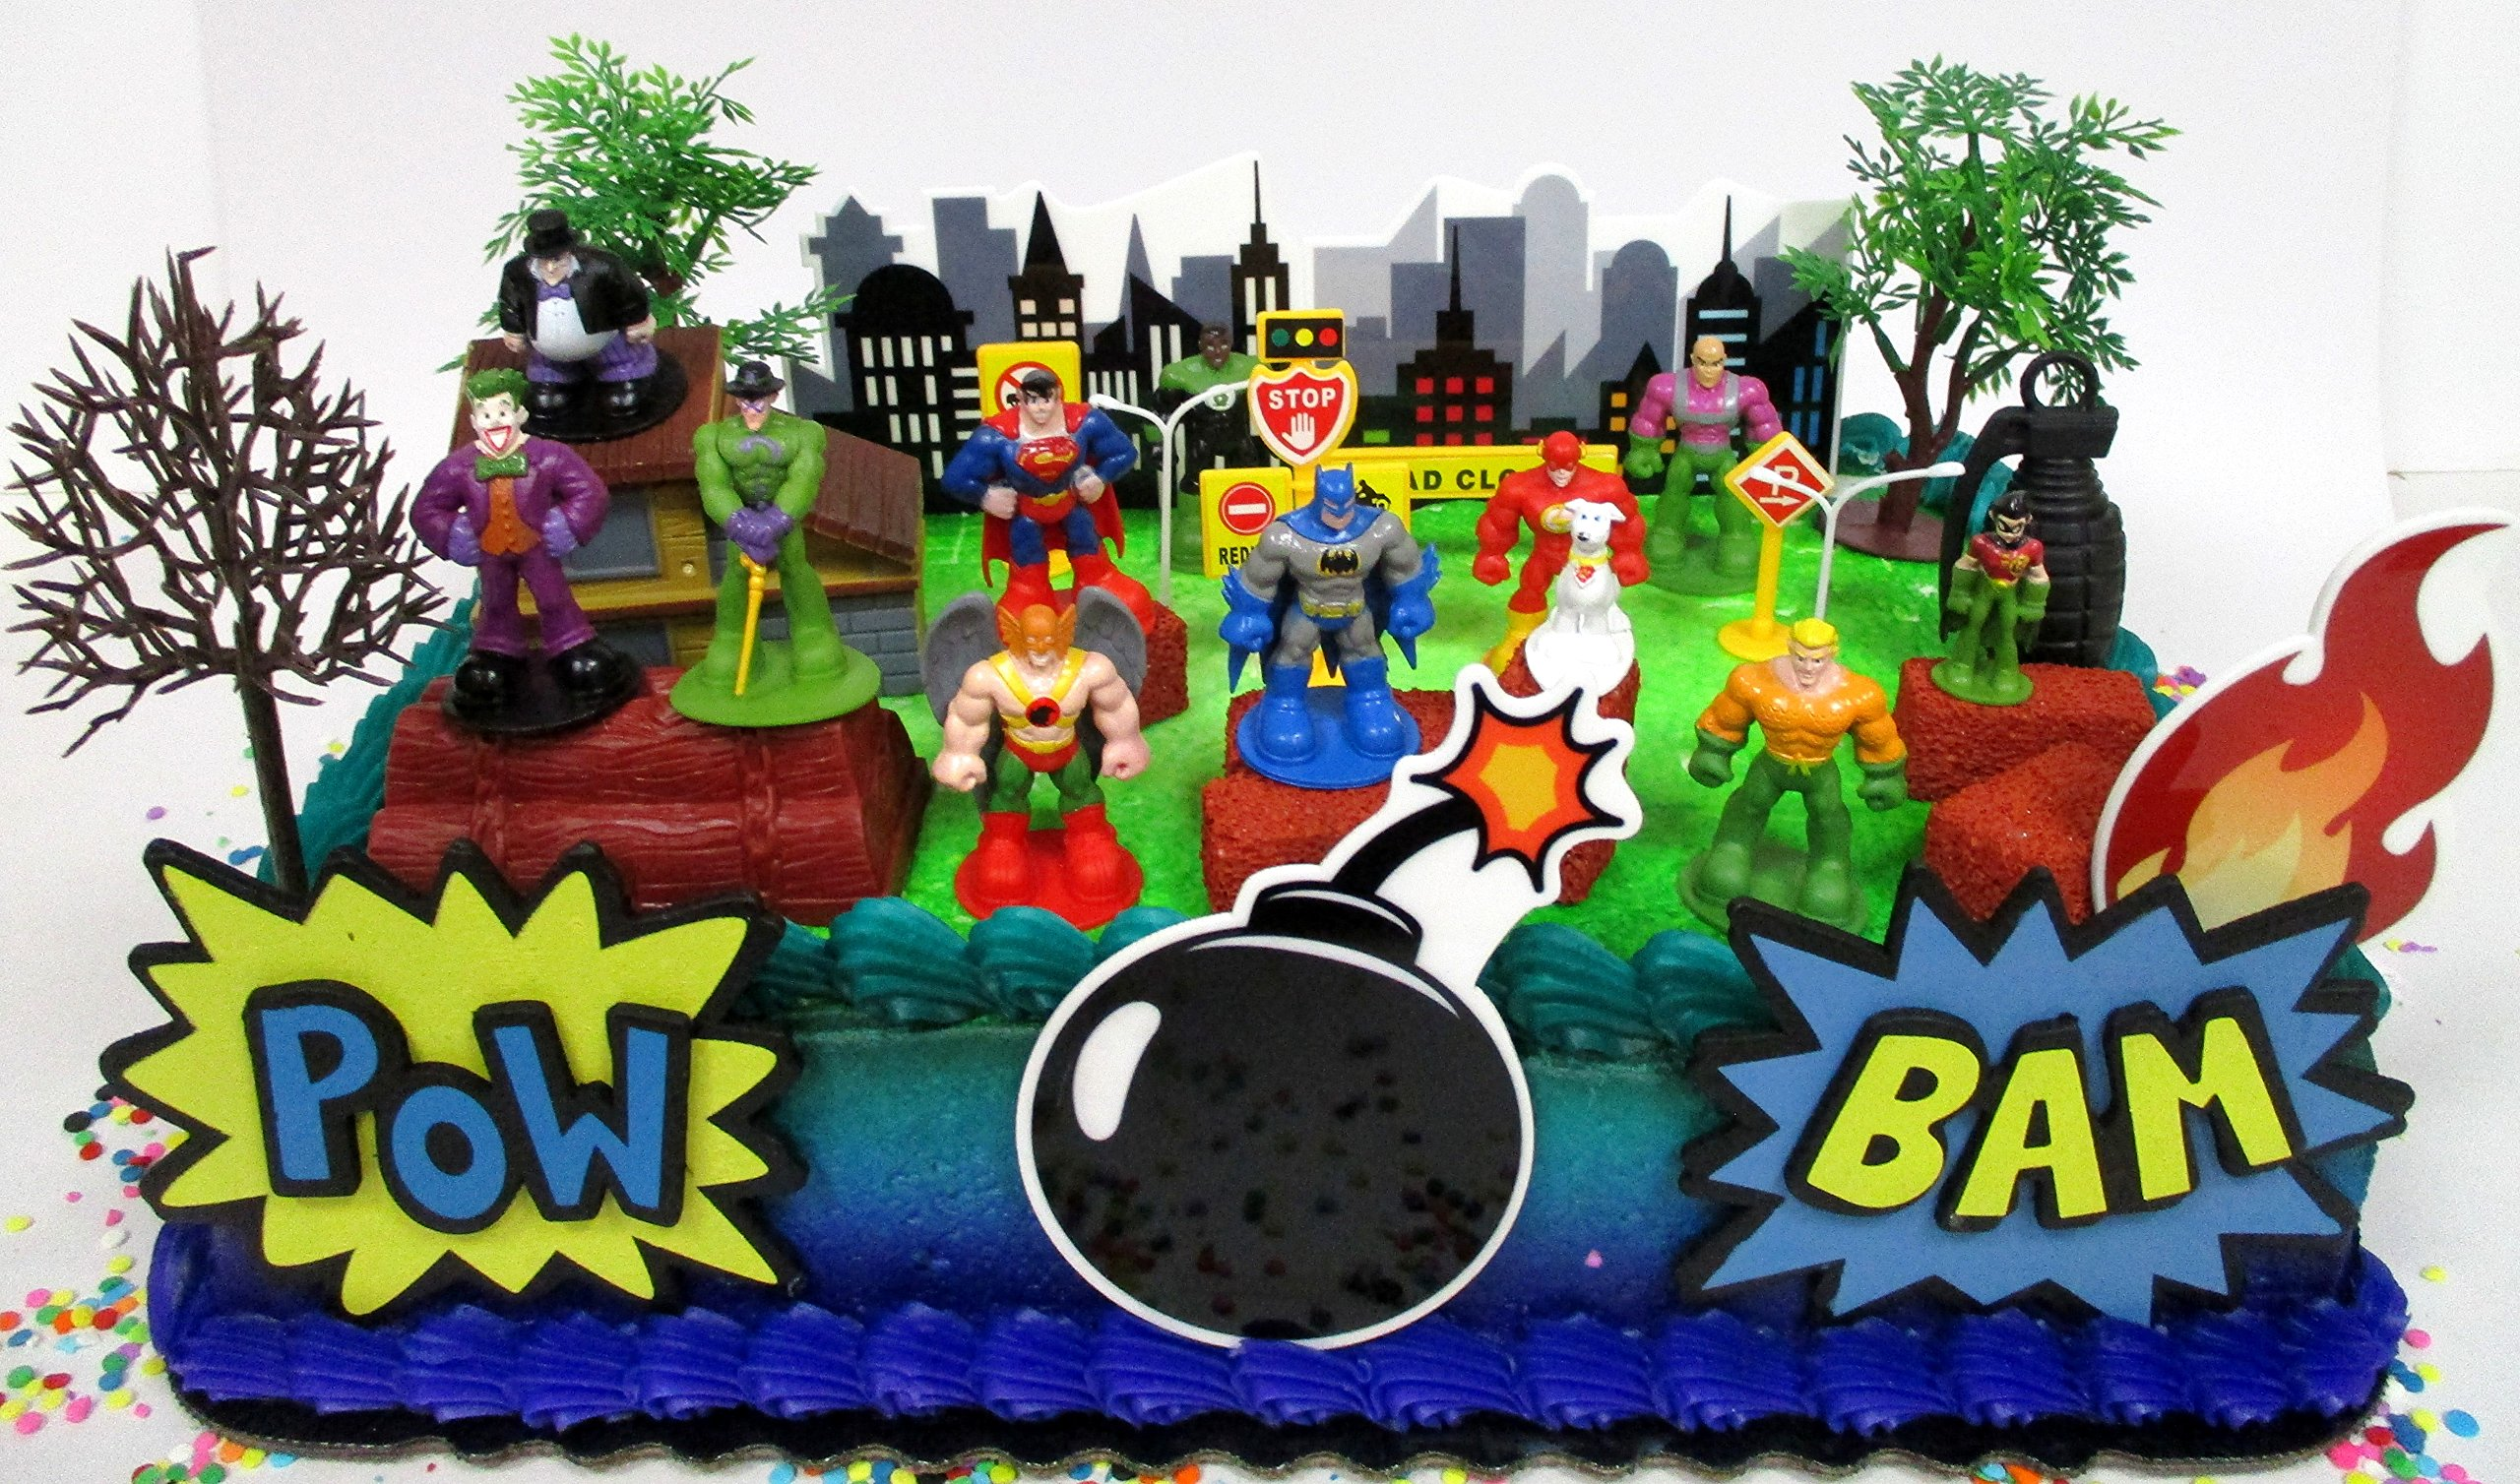 DC Comic Super Friends Birthday Cake Topper Set Featuring Super Hero Crime Fighters and Villains with Decorative Accessories by Kitoo (Image #1)